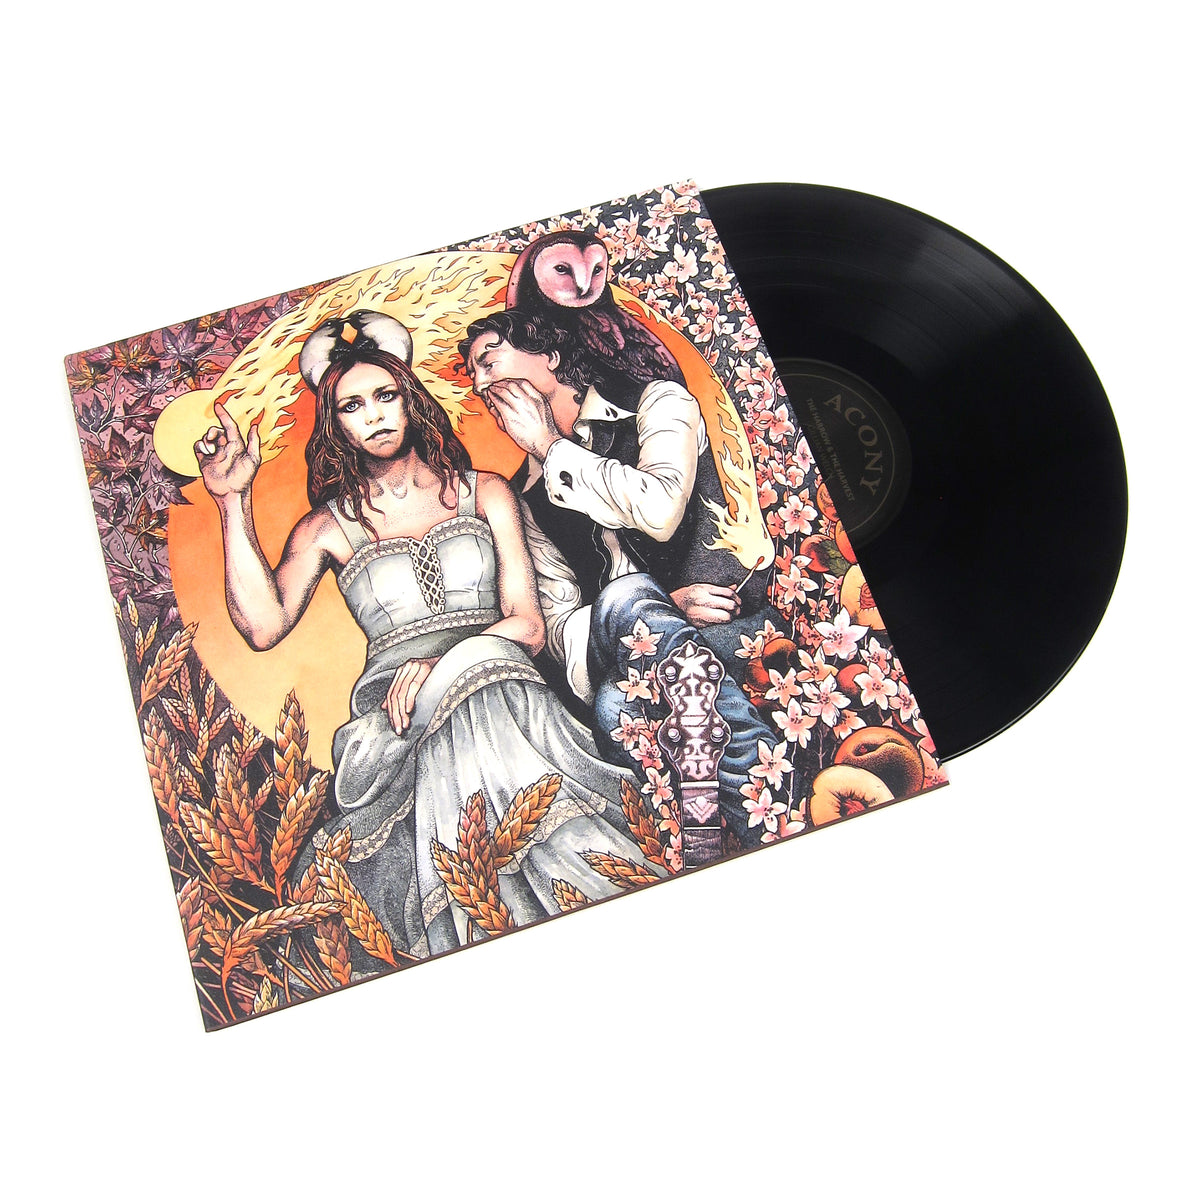 Gillian Welch: The Harrow & The Harvest Vinyl LP